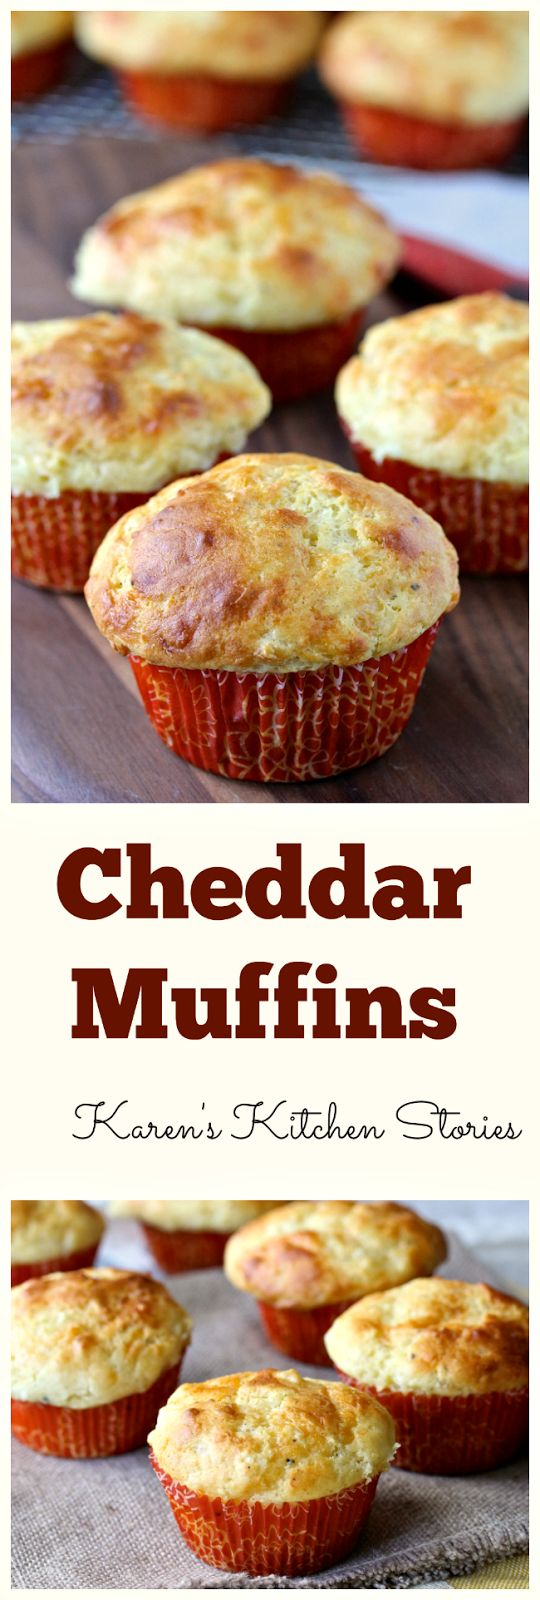 These cheddar muffins are loaded with cheese and flavored with shallots, just a bit of cornmeal, Dijon mustard, freshly ground black pepper, and Tabasco sauce. They have just the right amount of kick.